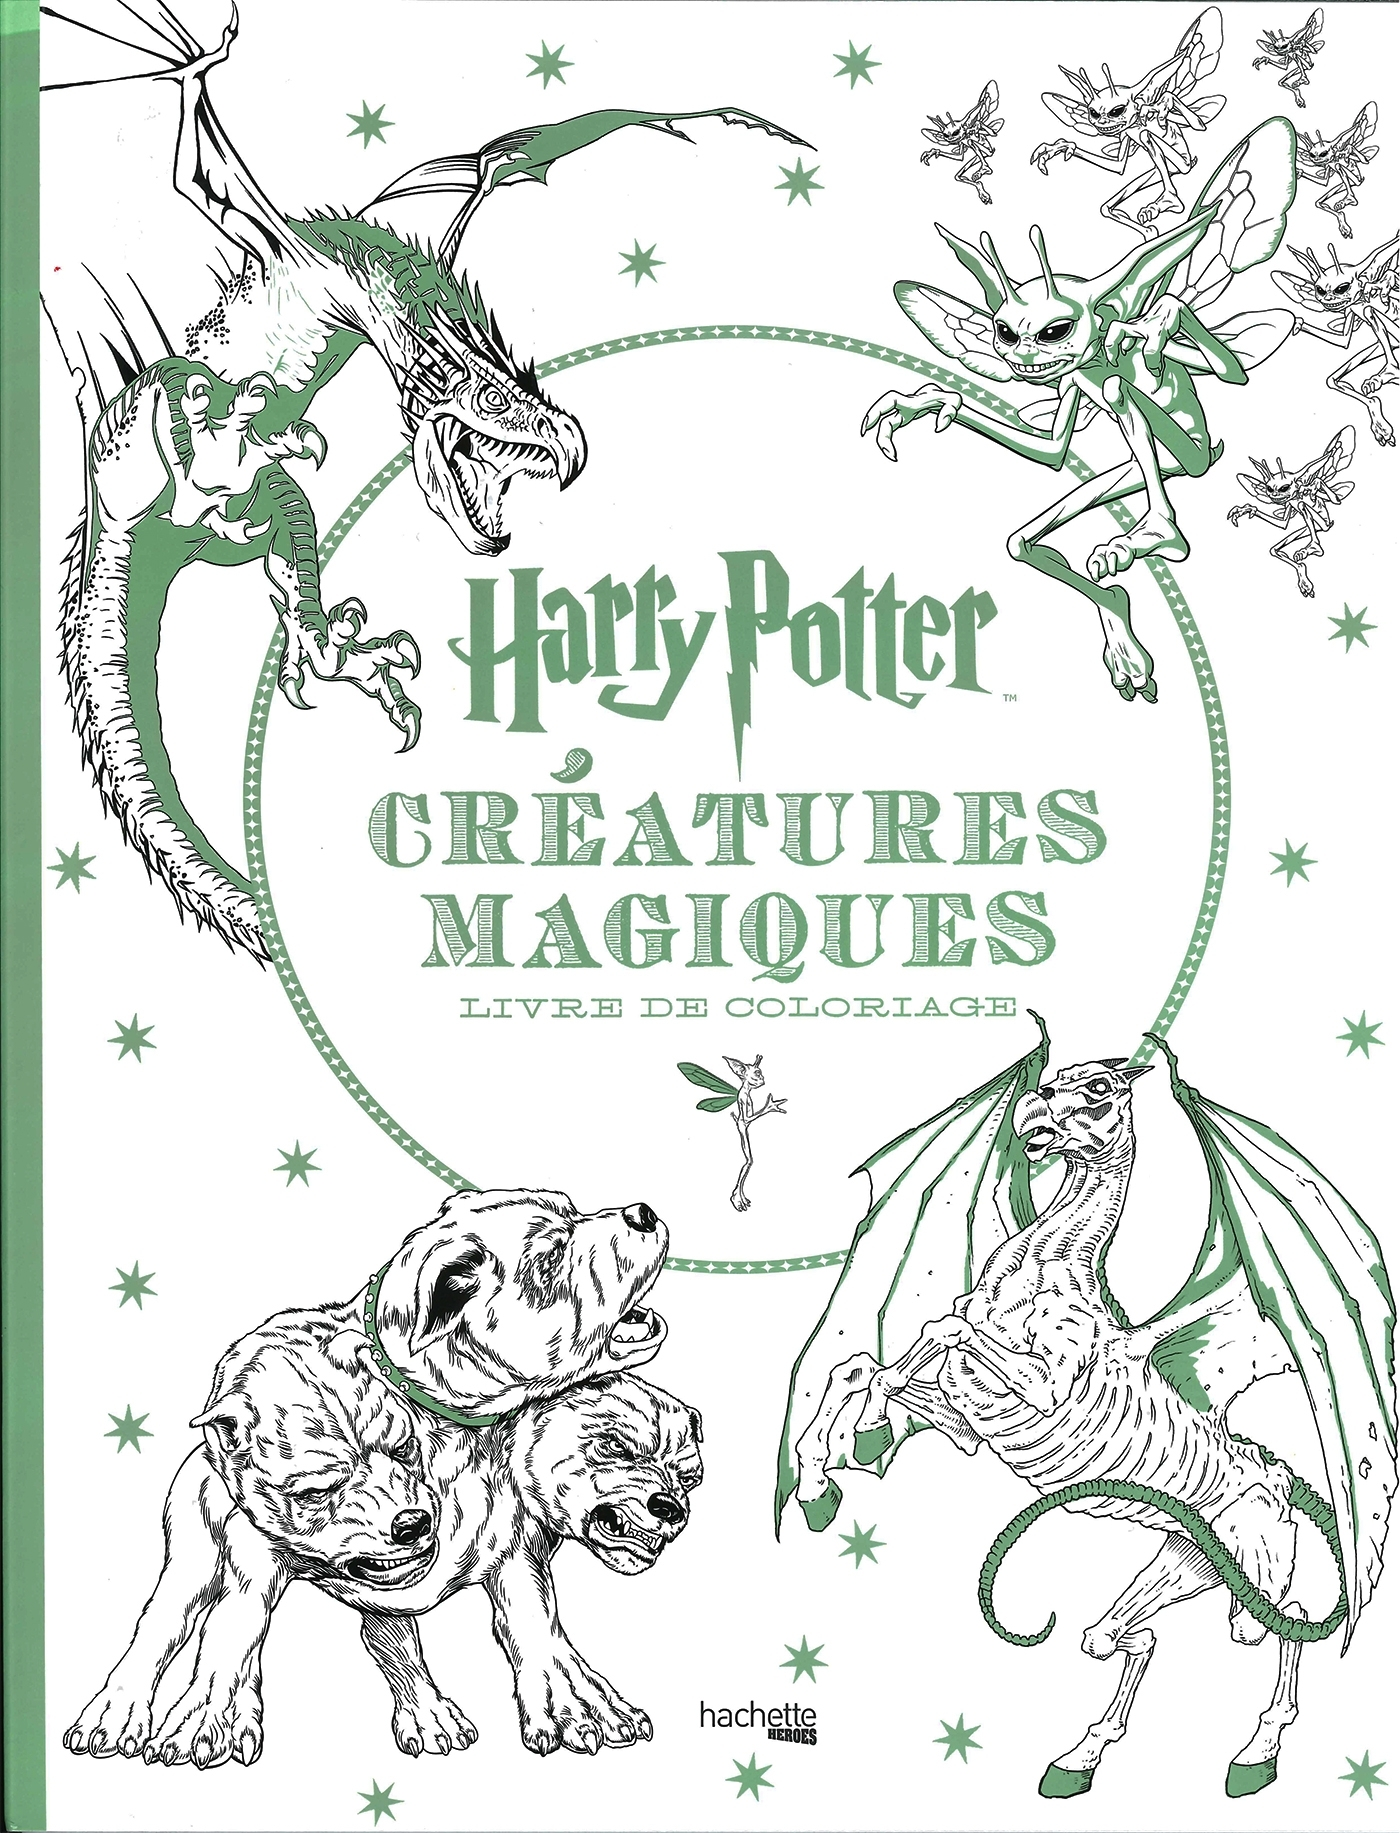 HARRY POTTER CREATURES MAGIQUES